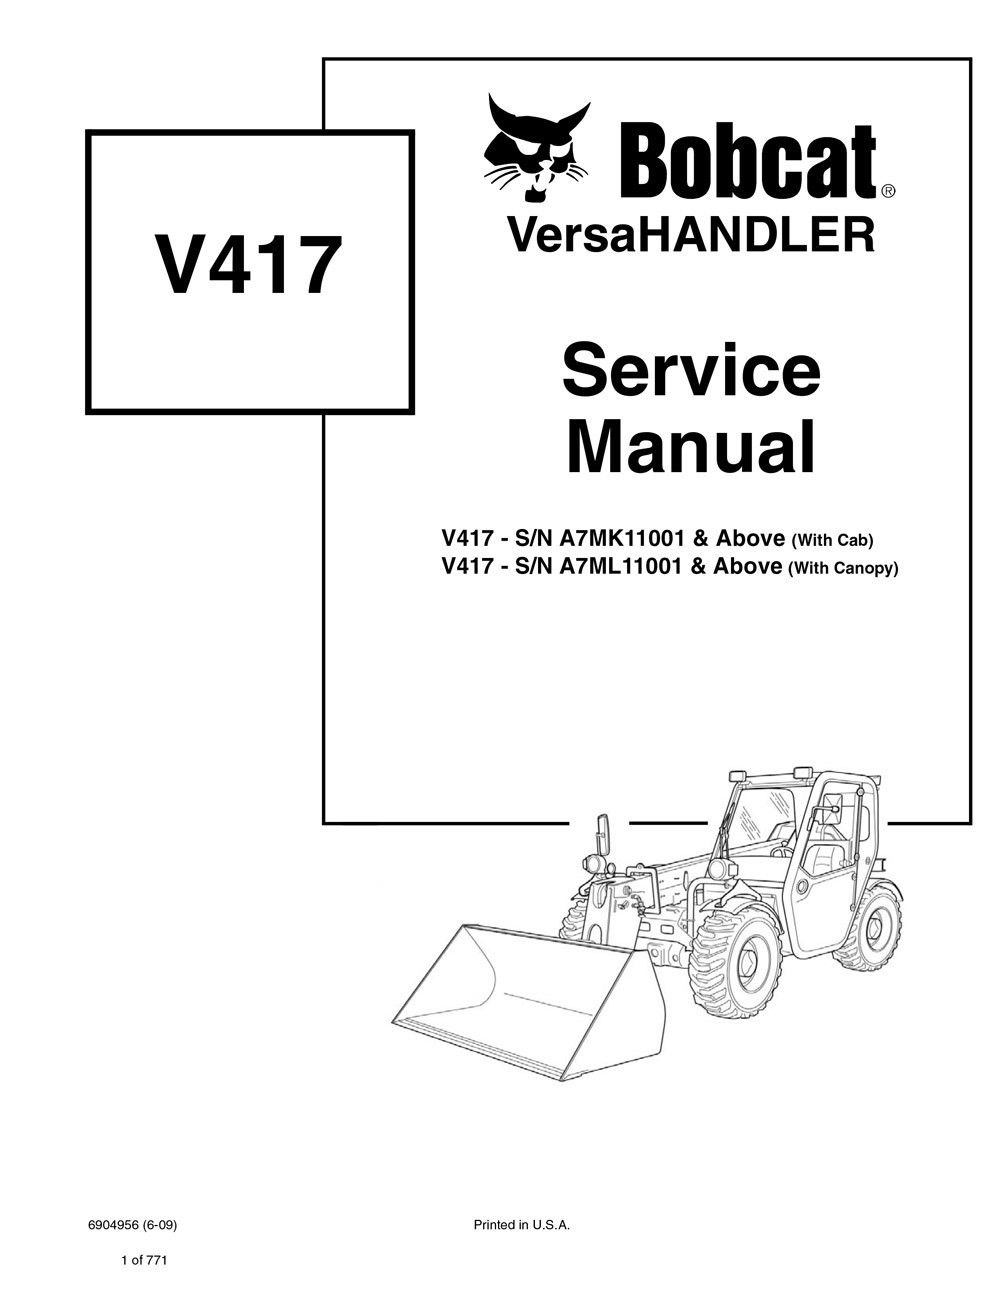 Wiring Harness Standards Pdf Moreover Trane Wiring Diagrams Schematics